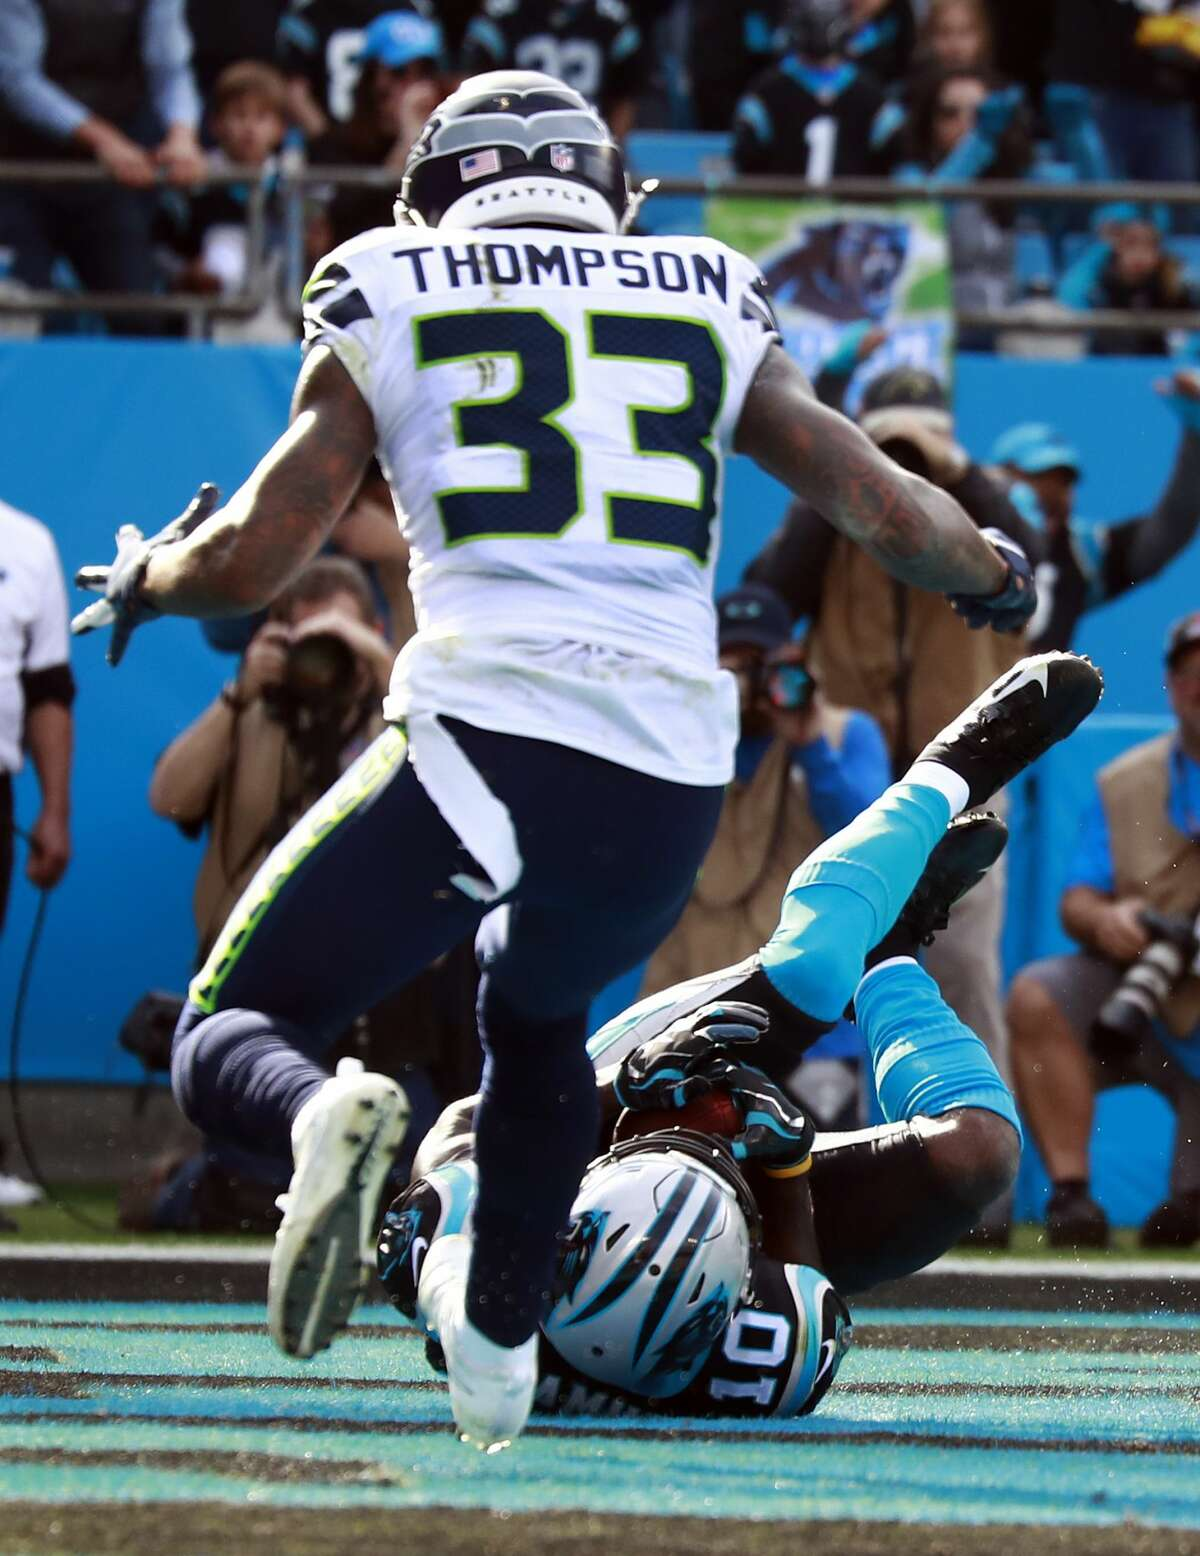 Carolina Panthers' Curtis Samuel (10) catches a touchdown pass against Seattle Seahawks' Tedric Thompson (33) during the first half of an NFL football game in Charlotte, N.C., Sunday, Nov. 25, 2018. (AP Photo/Jason E. Miczek)